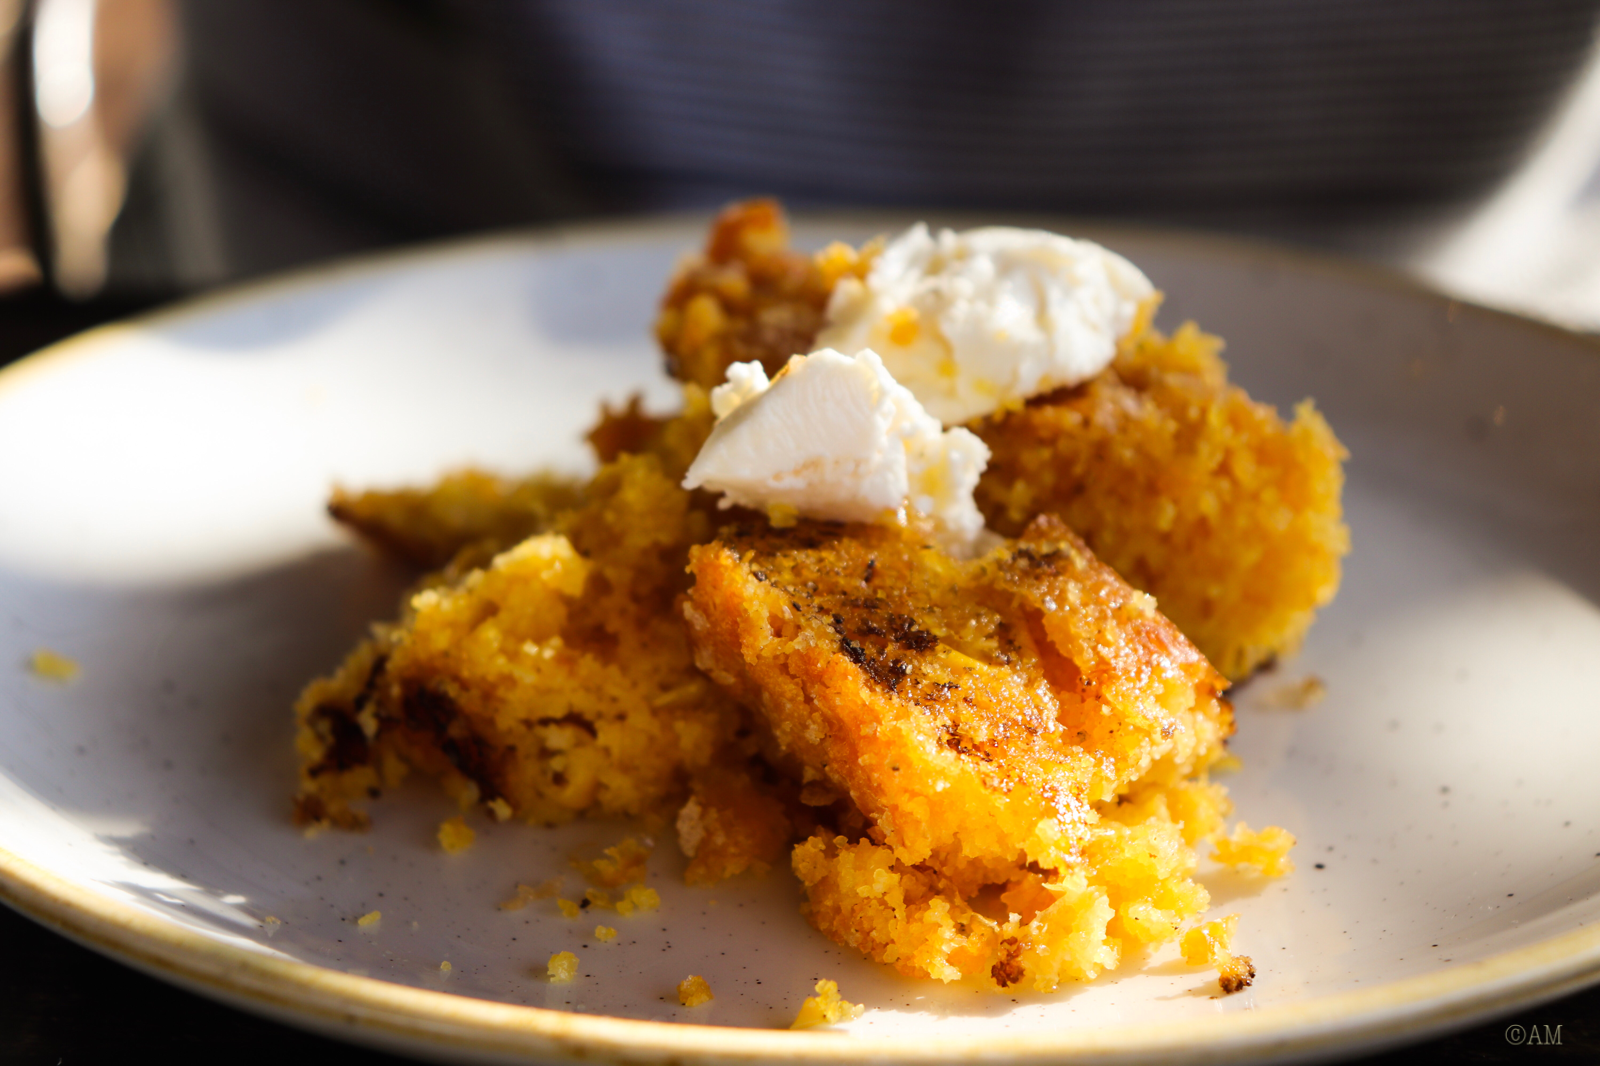 Go ahead, tell me you wouldn't devour this cornbread topped with f**king honey butter.